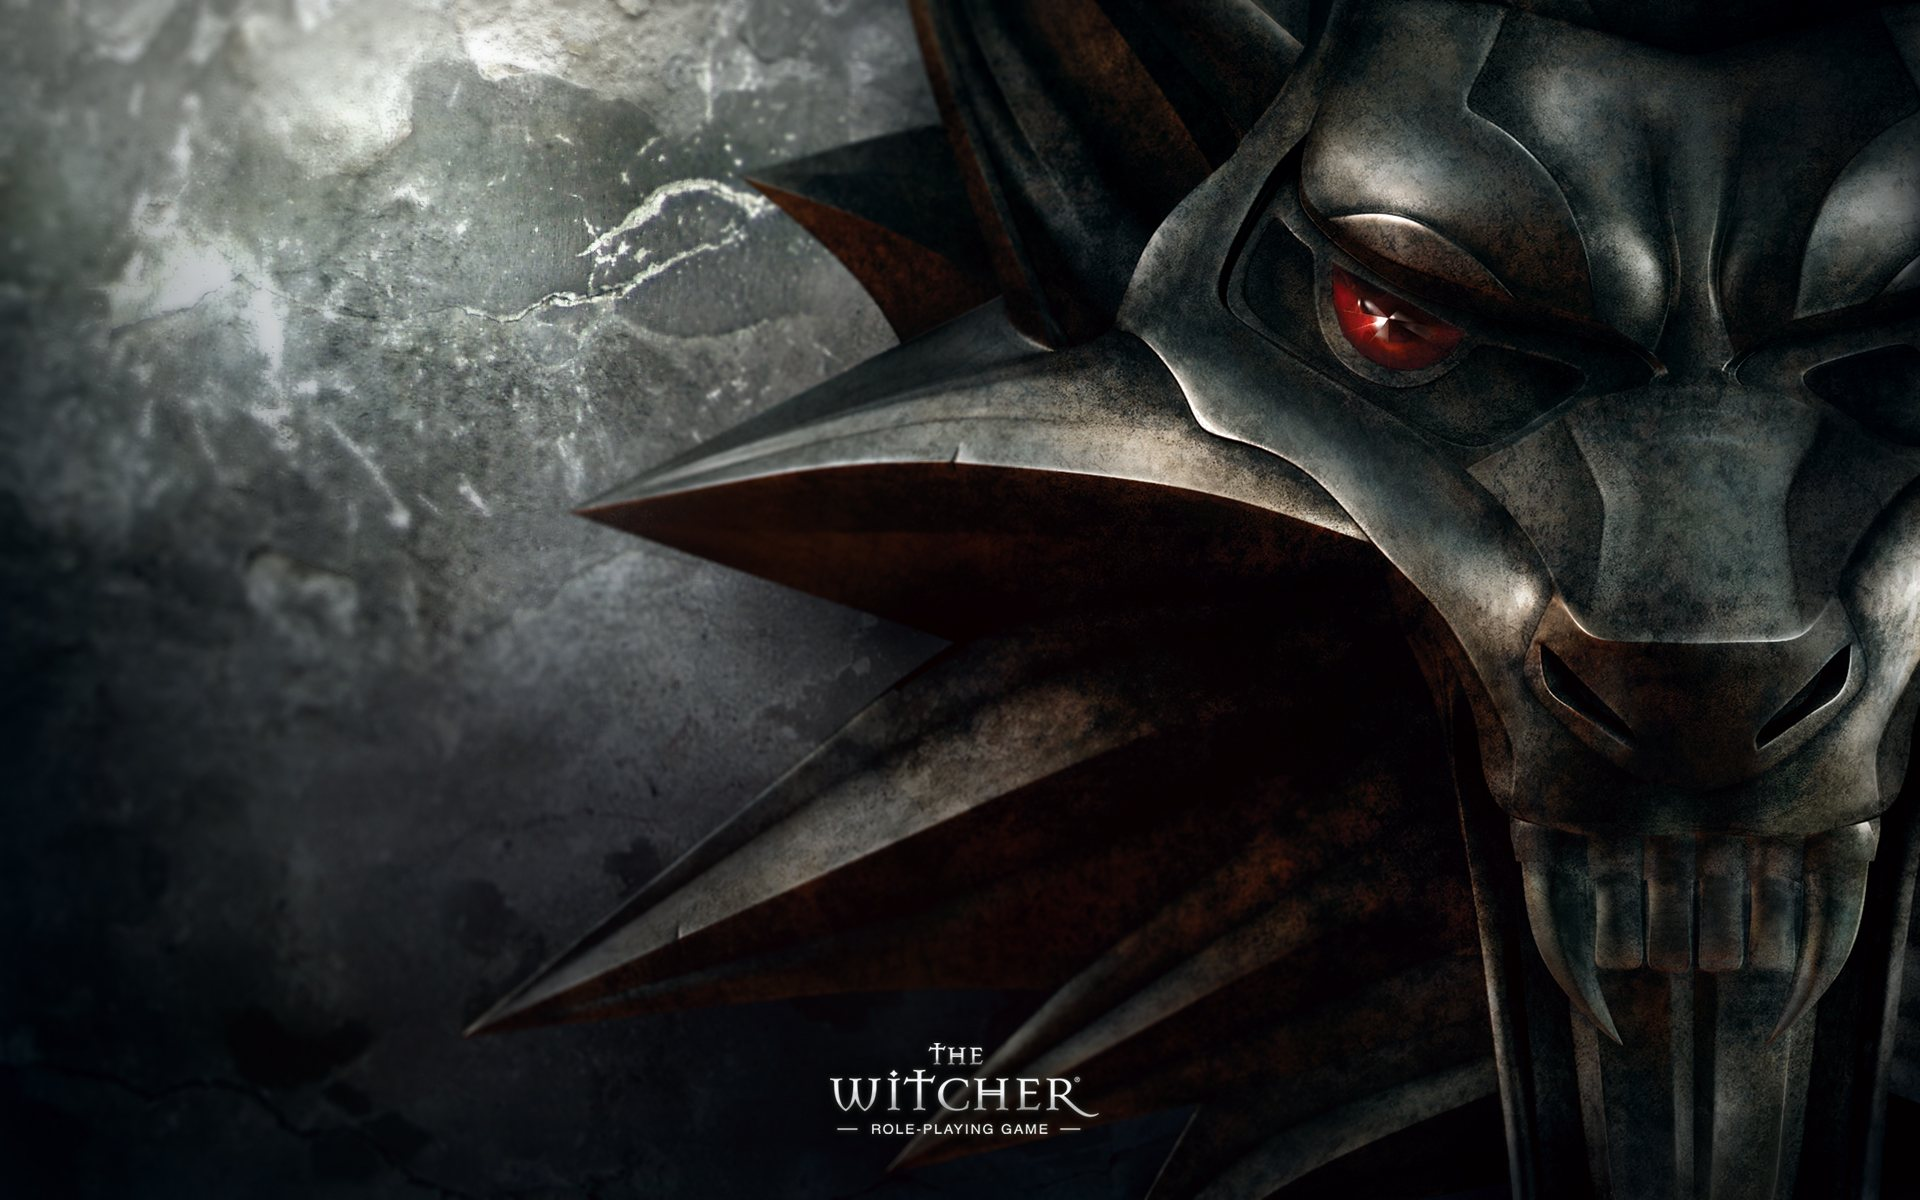 47 The Witcher Wallpaper Hd On Wallpapersafari